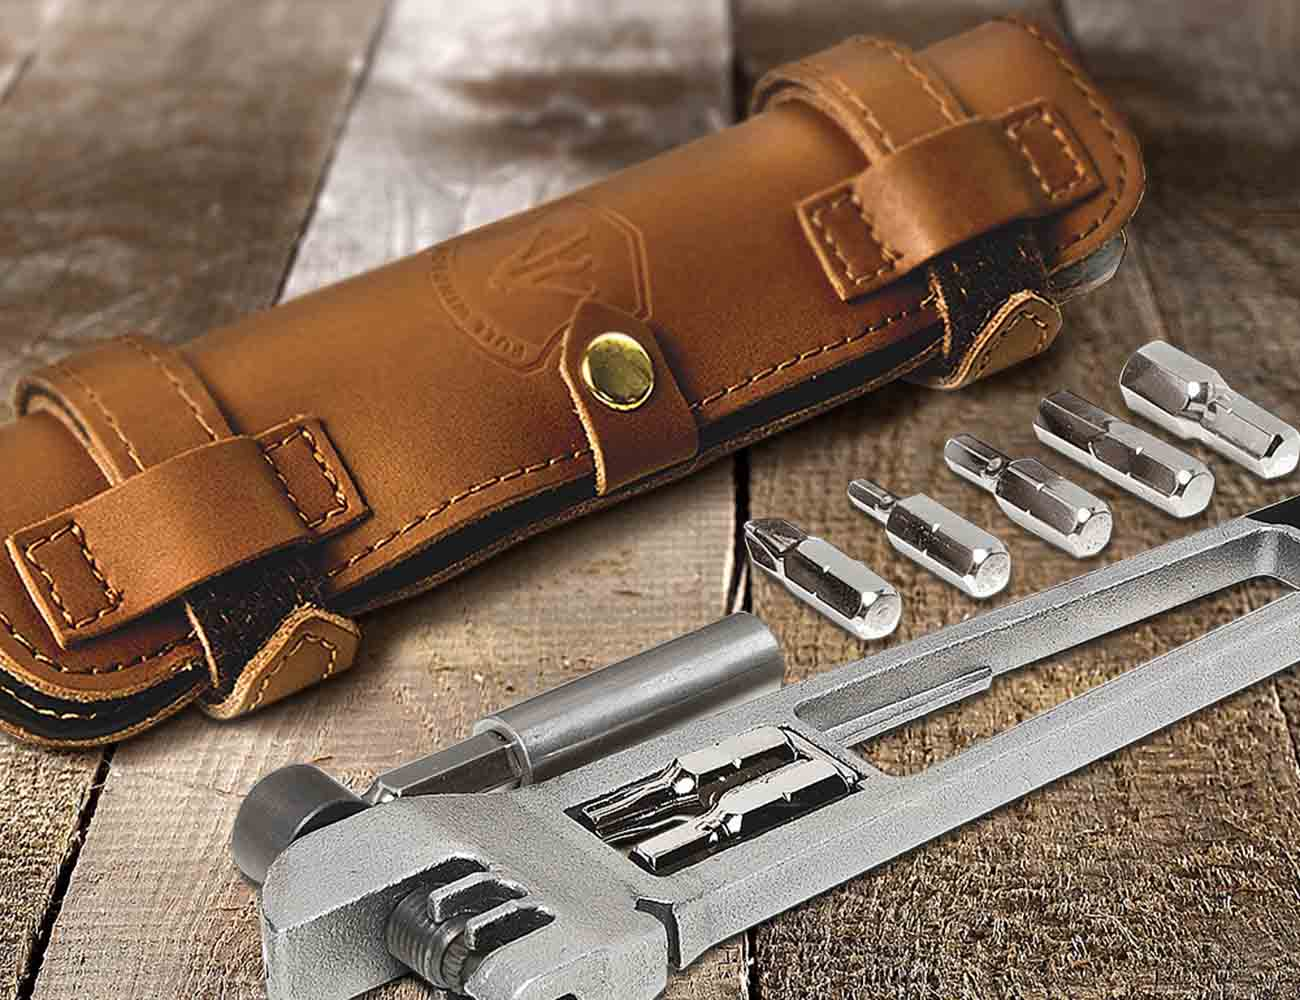 The Breaker Cycle Multi Tool by Full Windsor